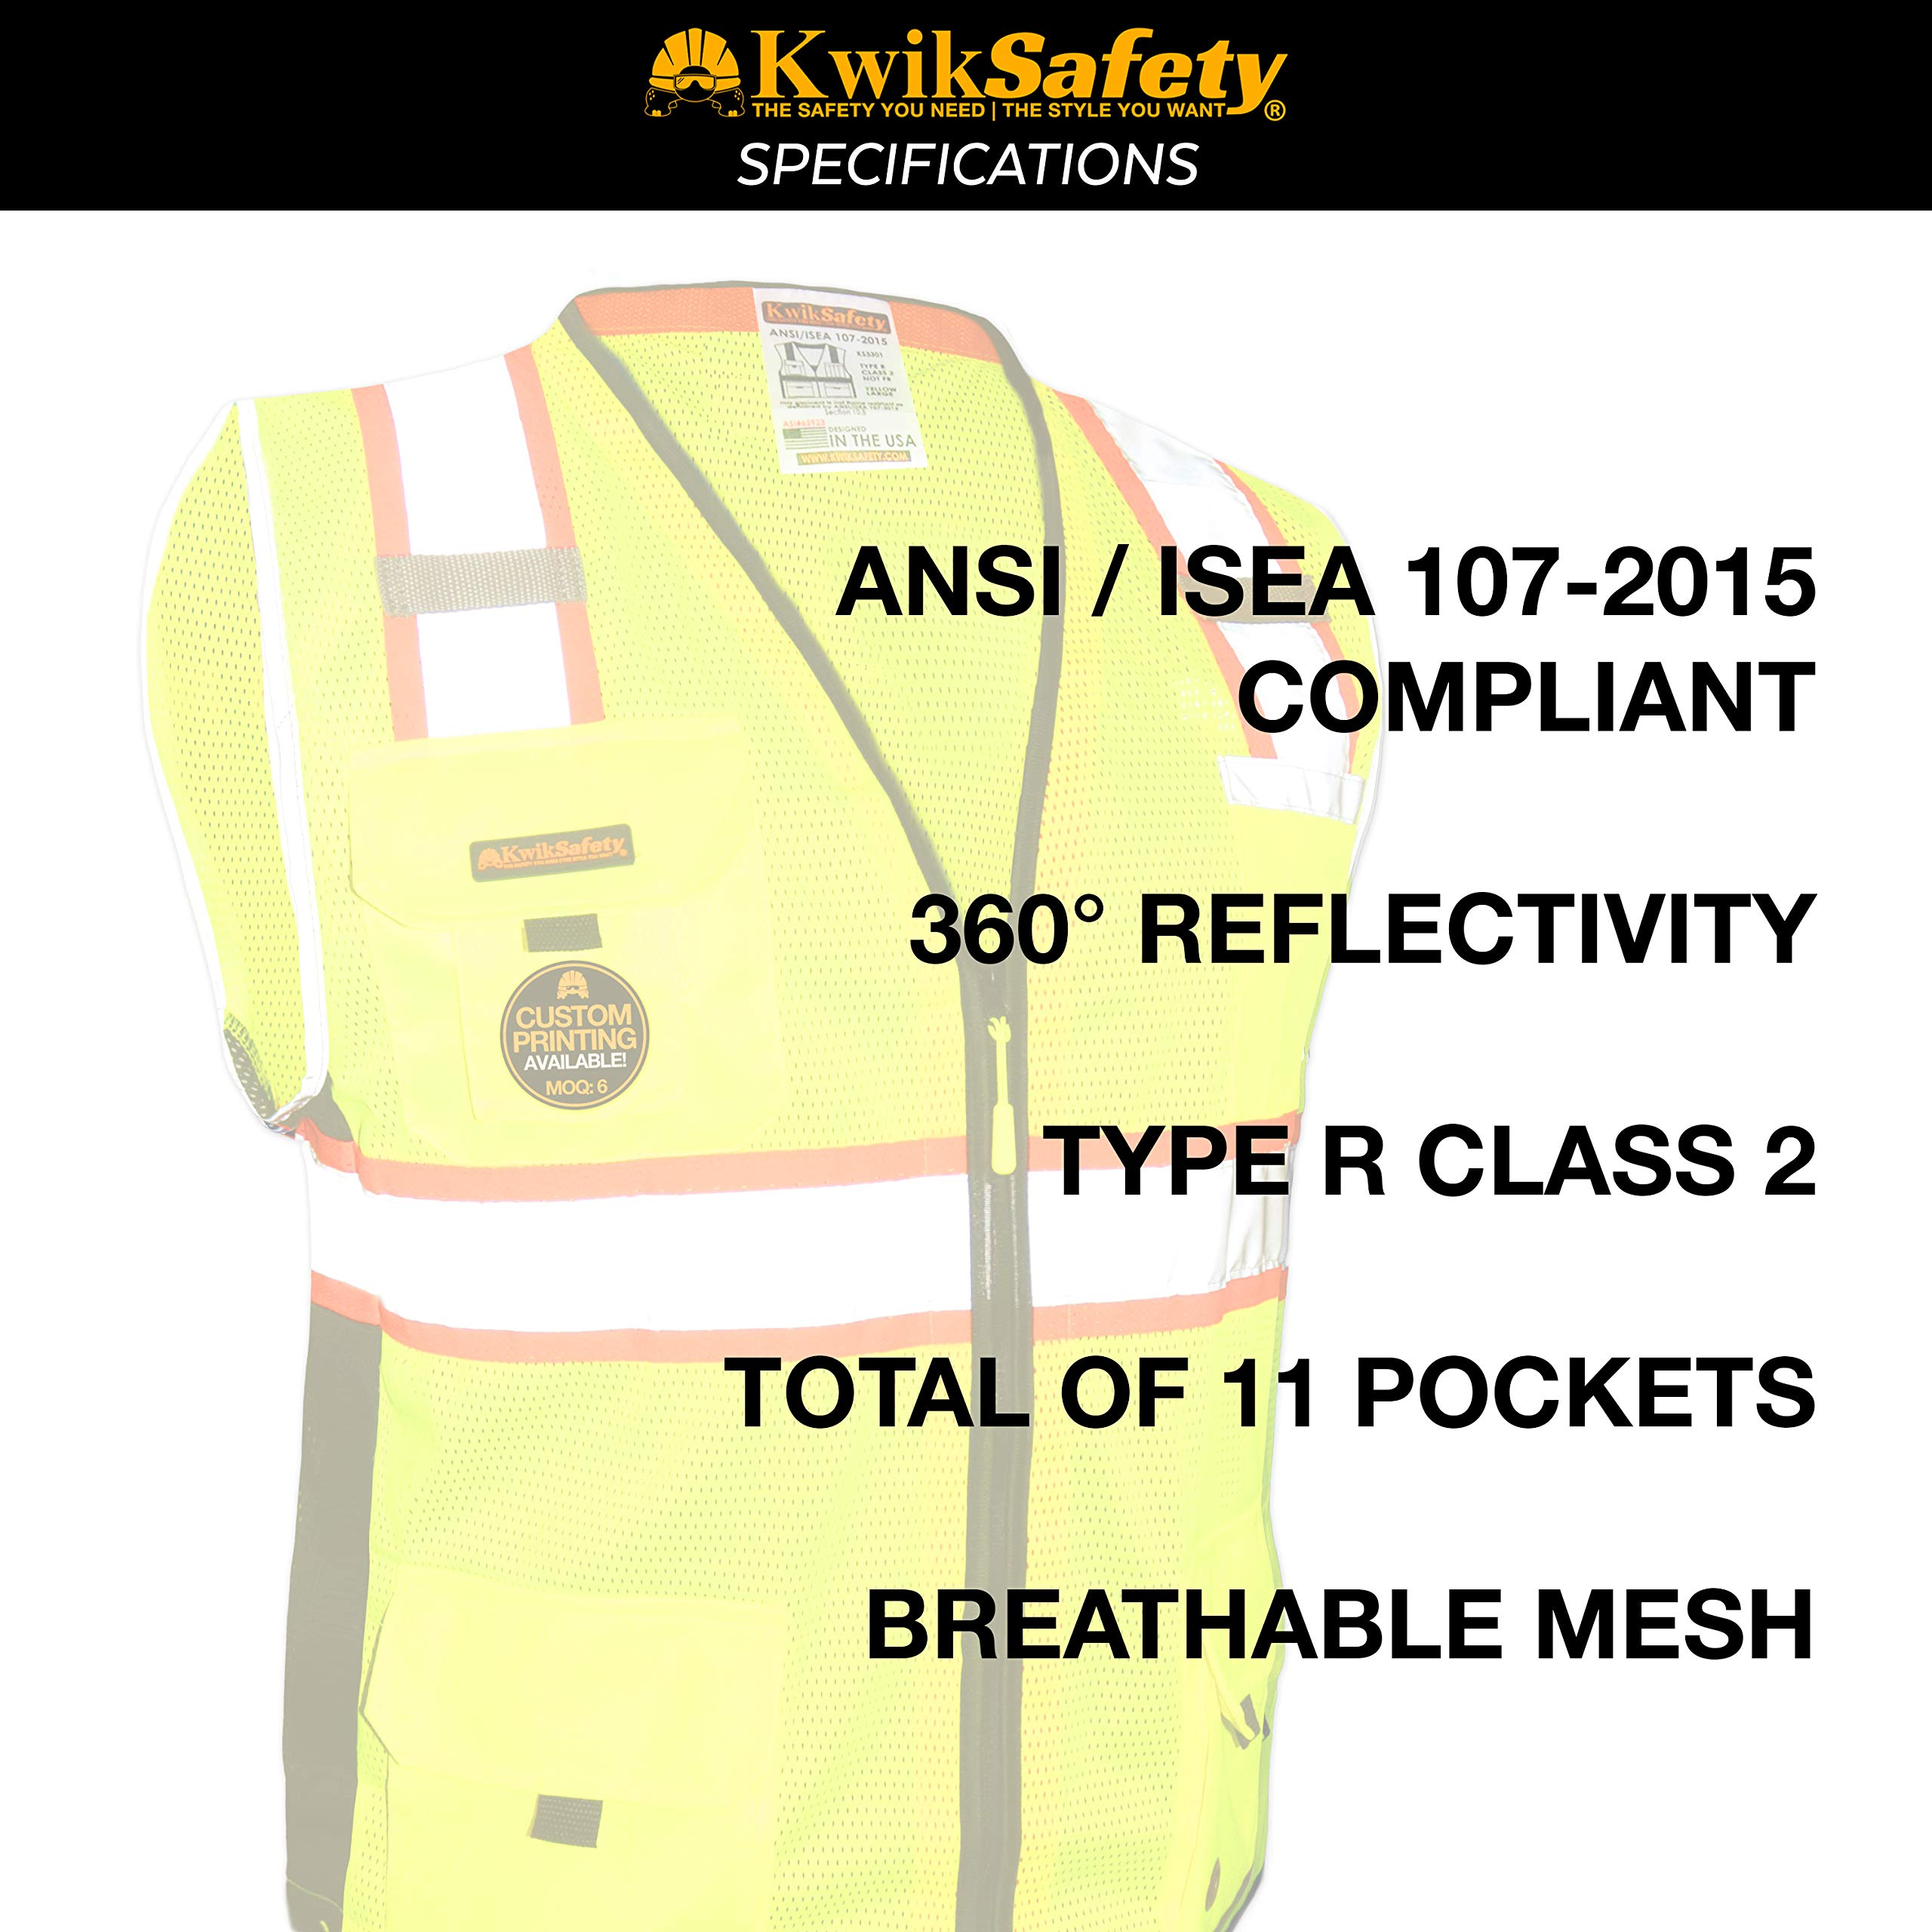 KwikSafety (Charlotte, NC) BIG KAHUNA (11 Pockets) Class 2 ANSI High Visibility Reflective Safety Vest Heavy Duty Mesh with Zipper and HiVis for OSHA Construction Work HiViz Men Yellow Black Small by KwikSafety (Image #6)